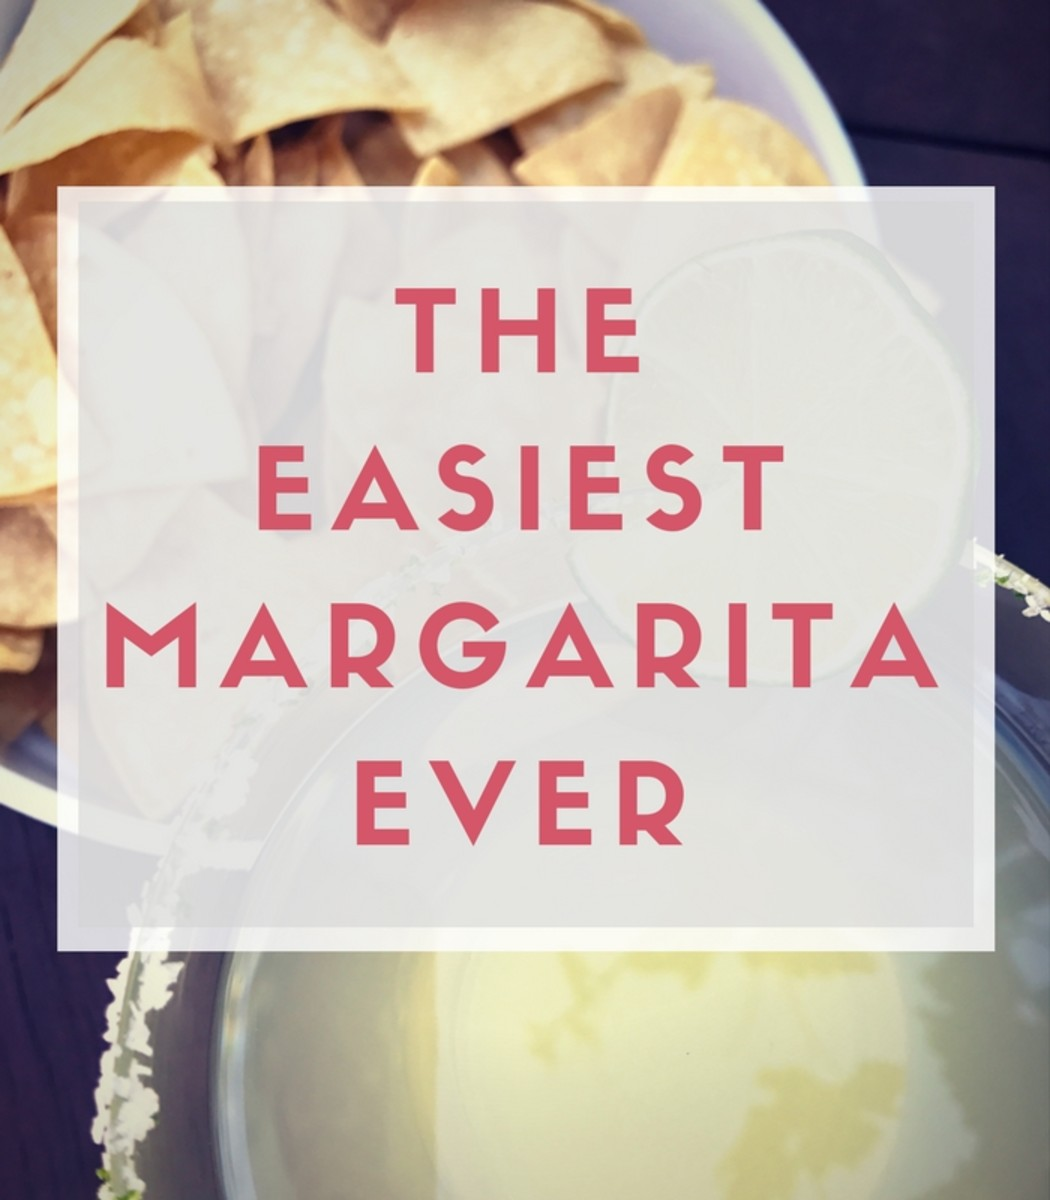 Easiest Margartia Ever